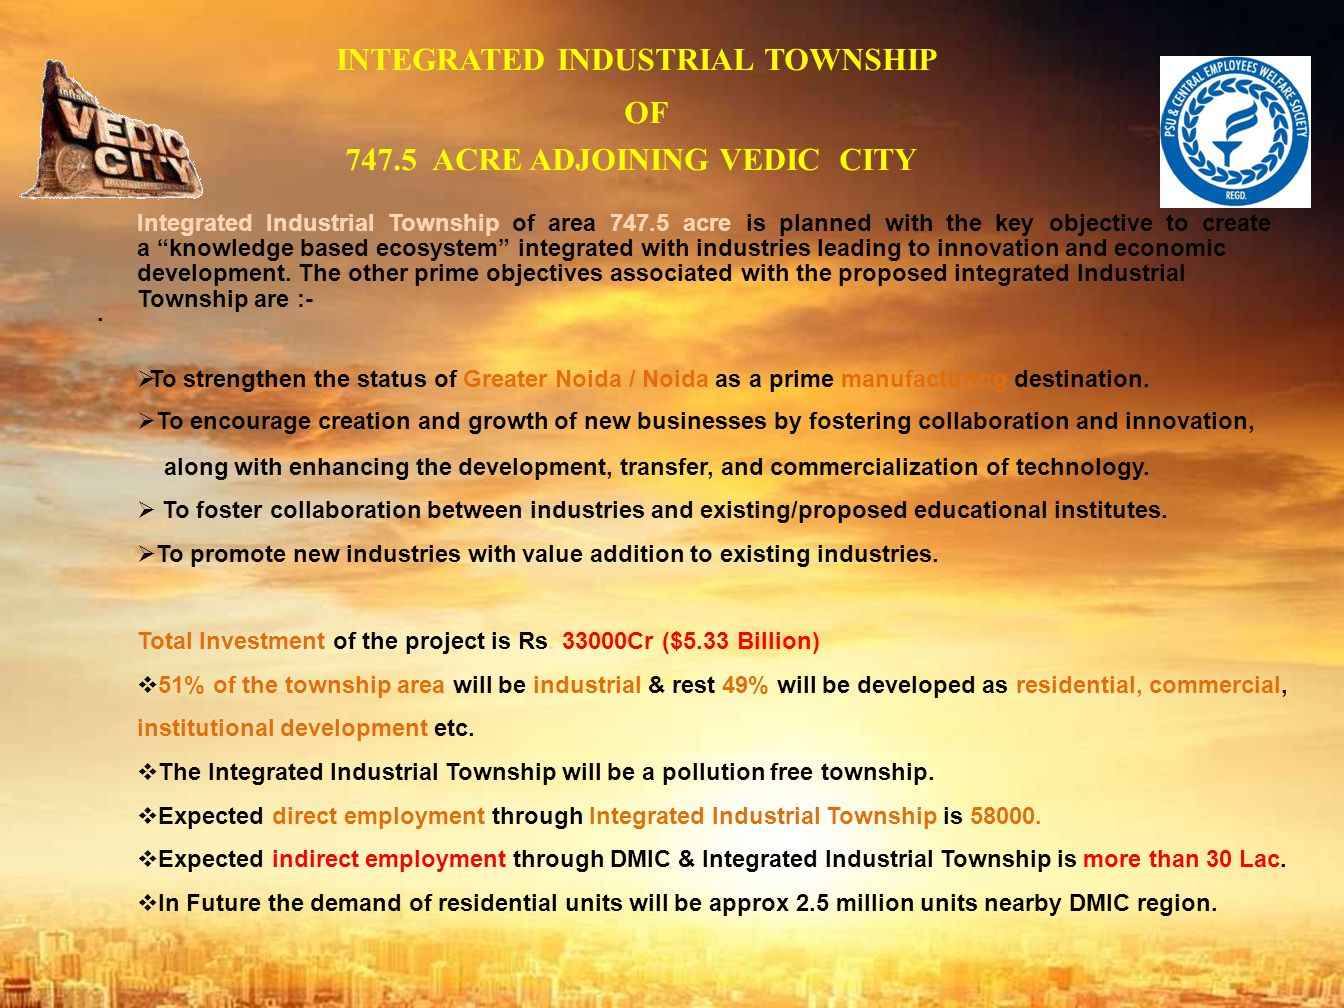 INTEGRATED INDUSTRIAL TOWNSHIP 747.5 ACRE ADJOINING VEDIC CITY